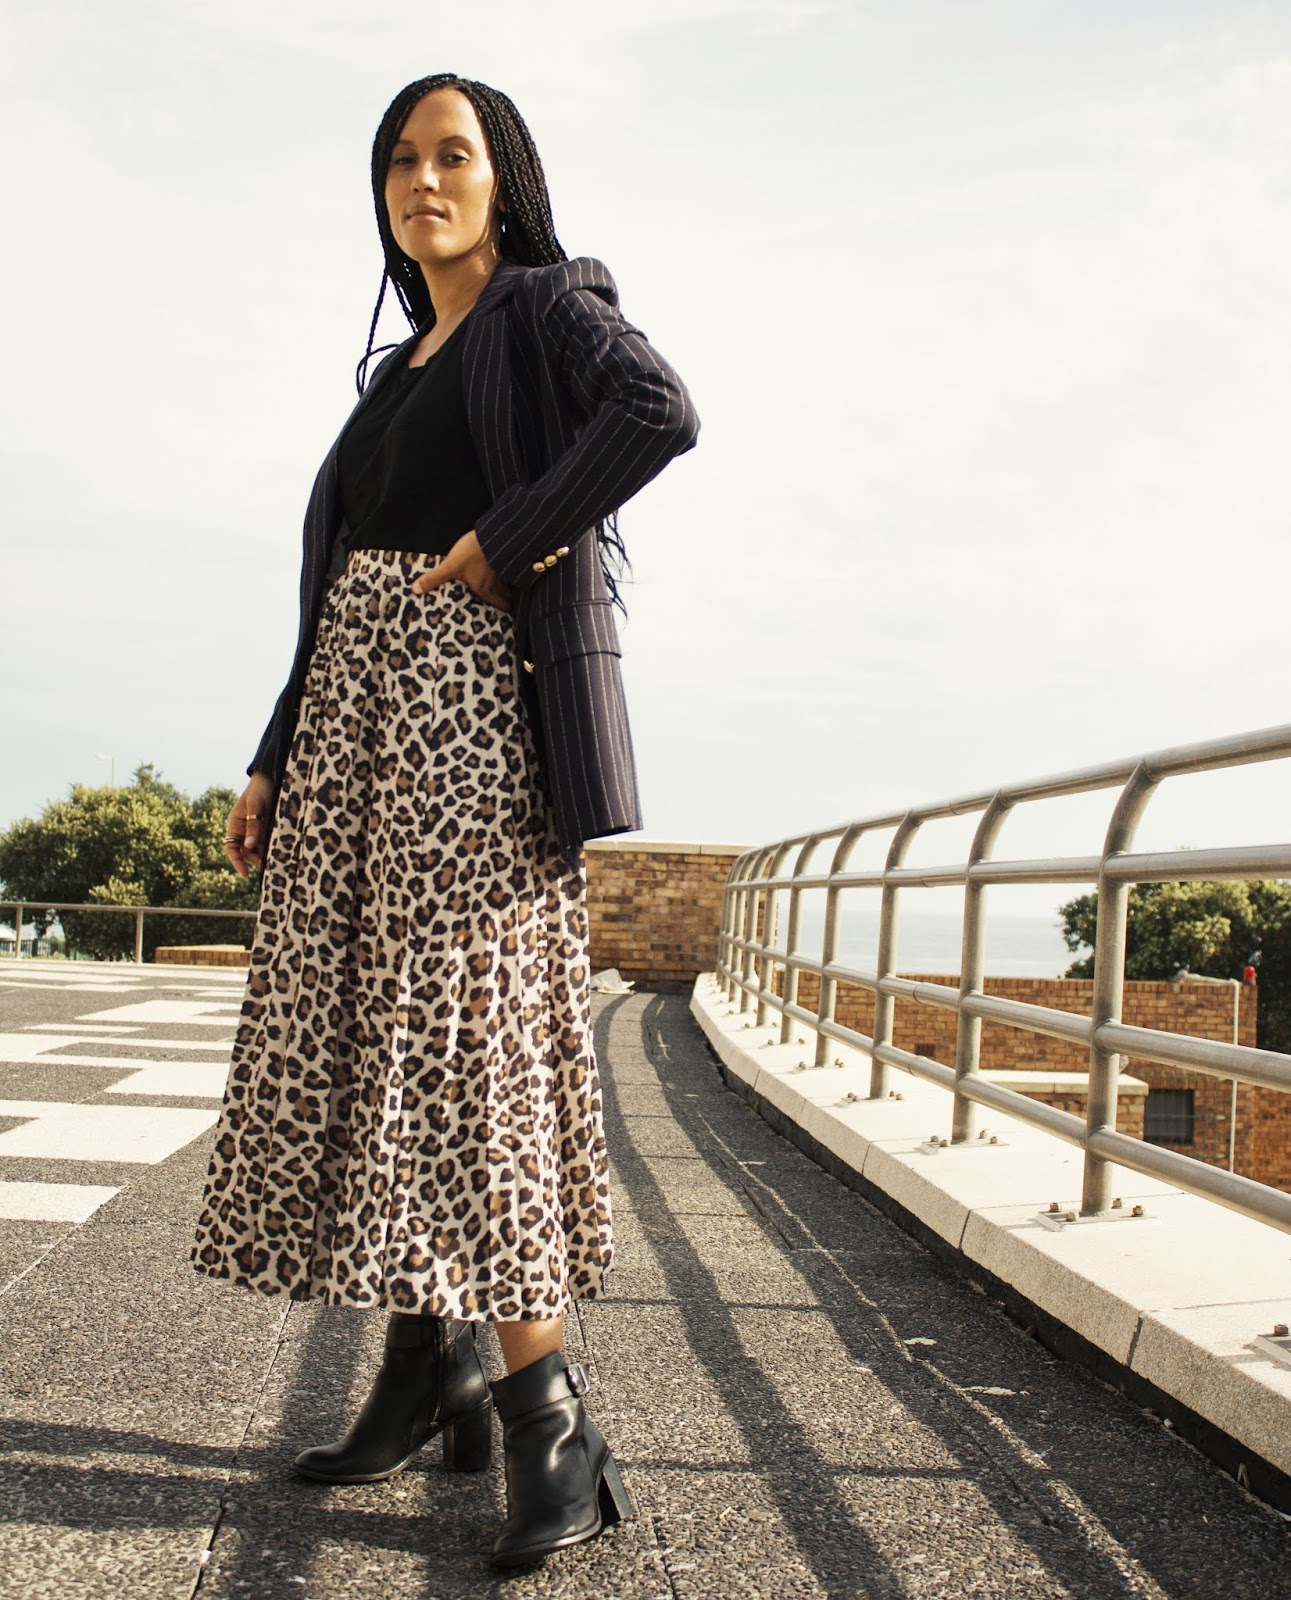 Liezel-Esquire-how-to-wear-leopard-print